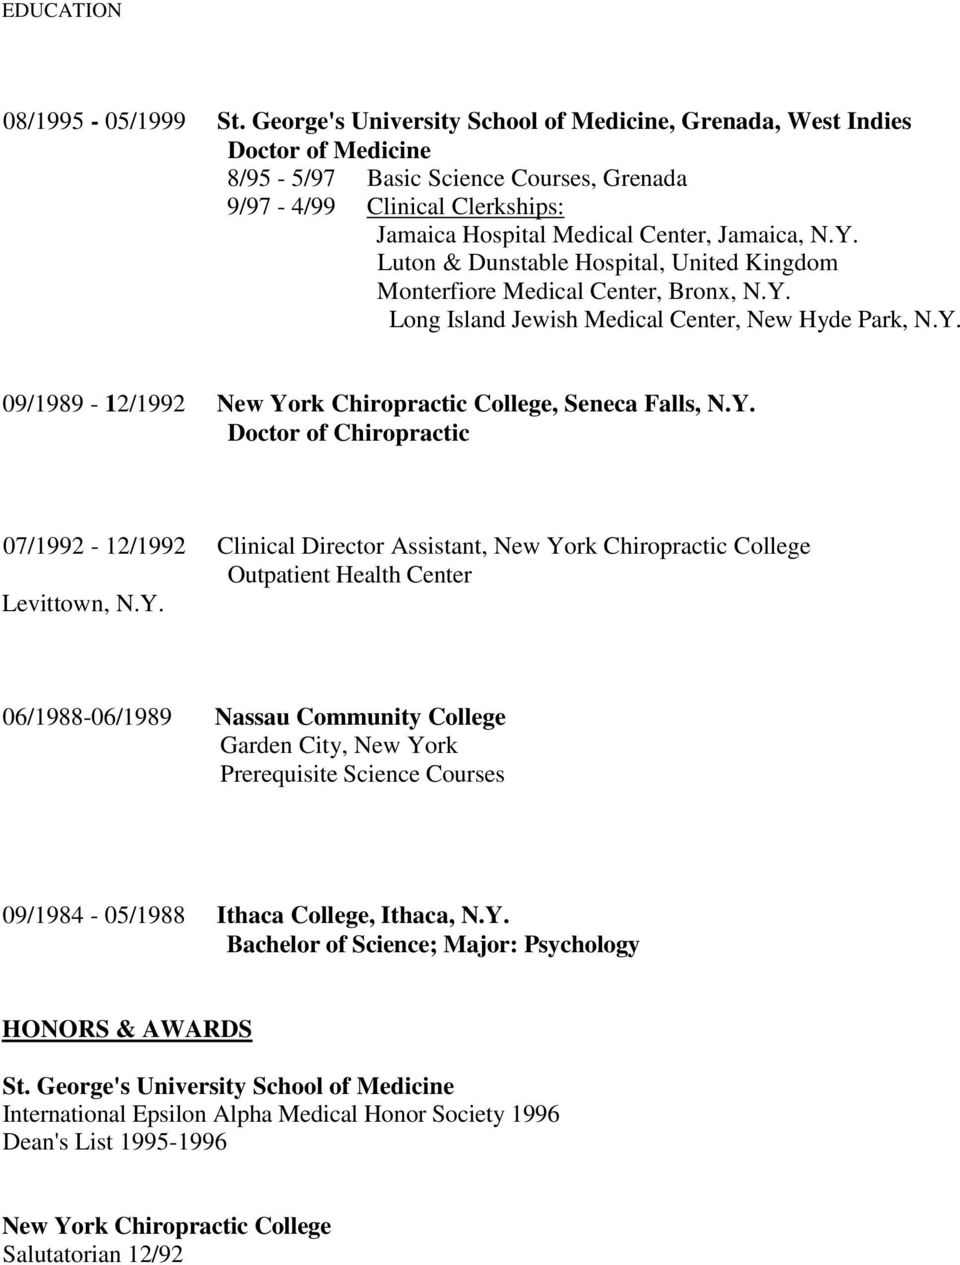 Luton & Dunstable Hospital, United Kingdom Monterfiore Medical Center, Bronx, N.Y. Long Island Jewish Medical Center, New Hyde Park, N.Y. 09/1989-12/1992 New York Chiropractic College, Seneca Falls, N.